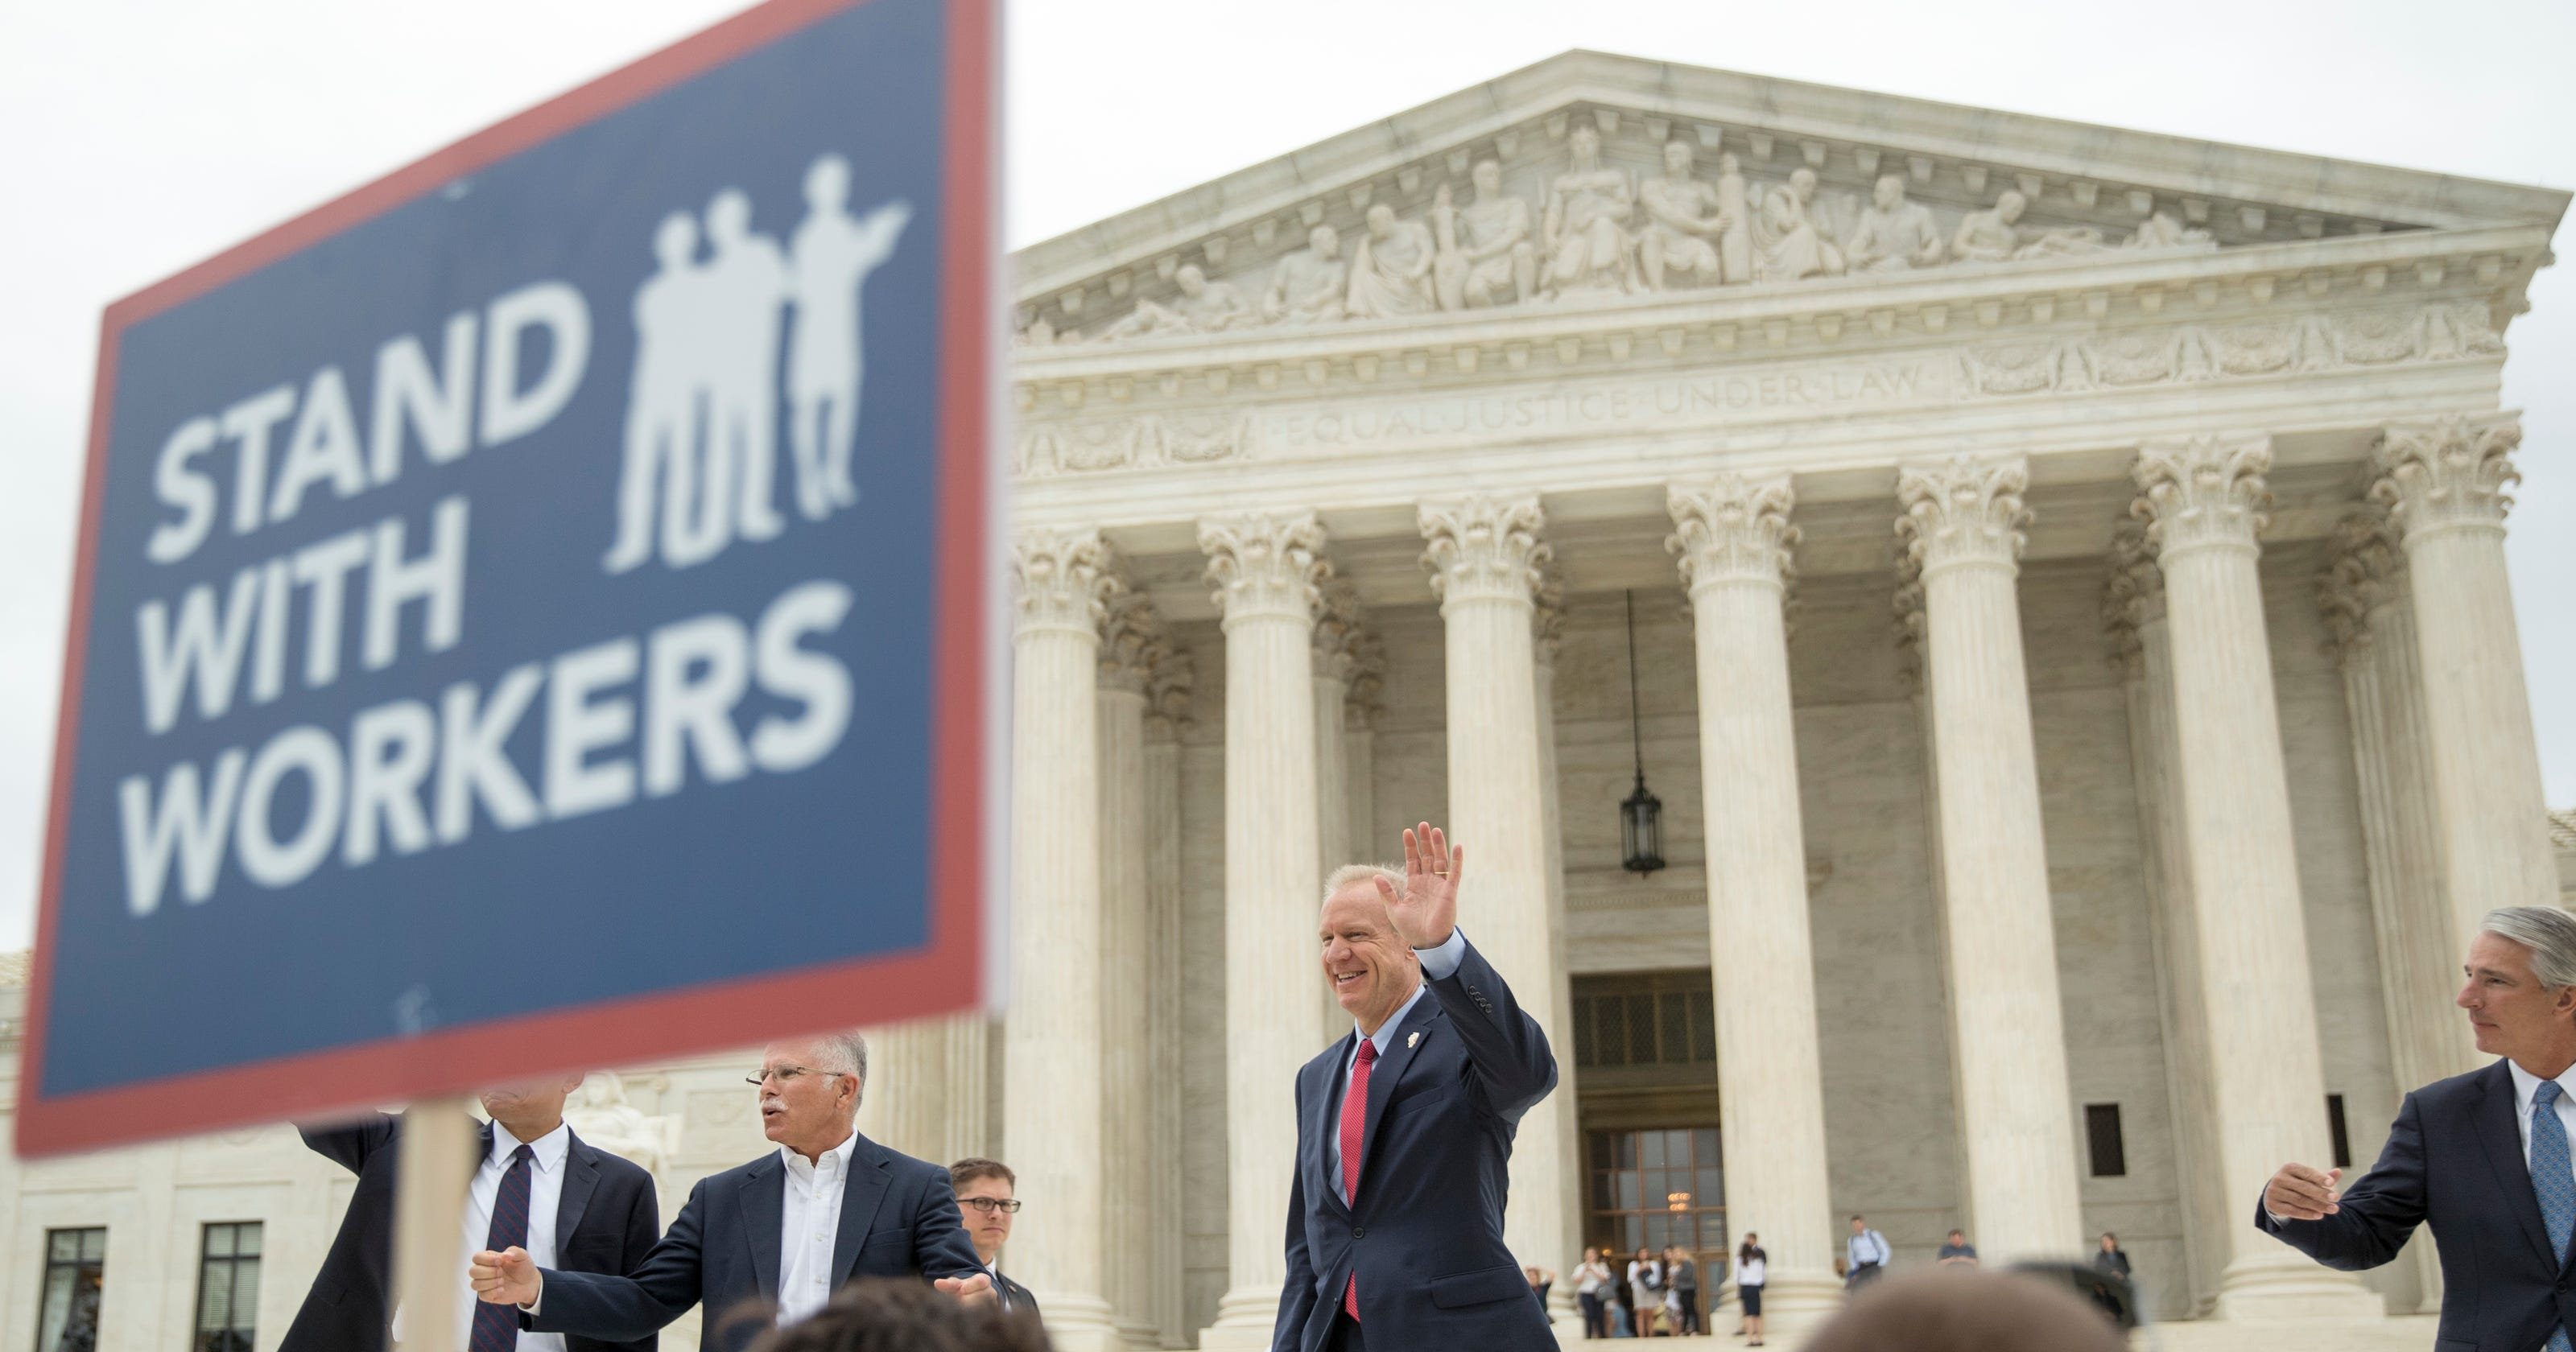 After Supreme Court's Janus decision, unions will start ...